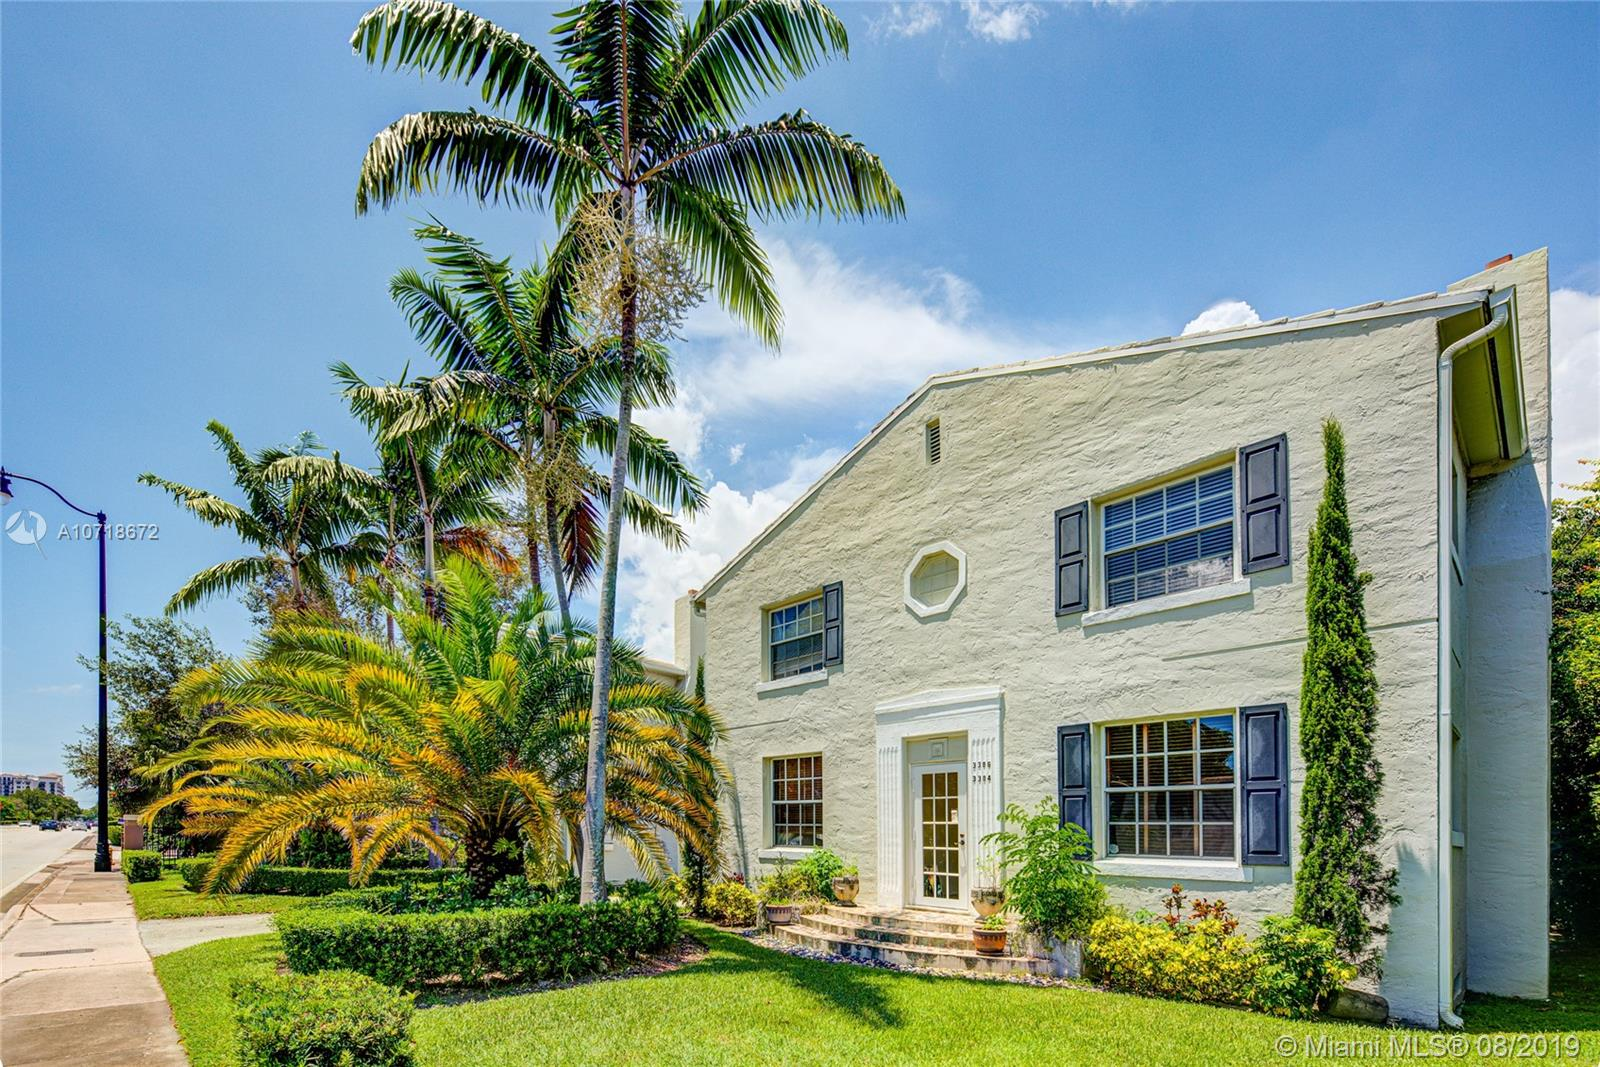 3306 S Le Jeune Rd, one of homes for sale in Coral Gables